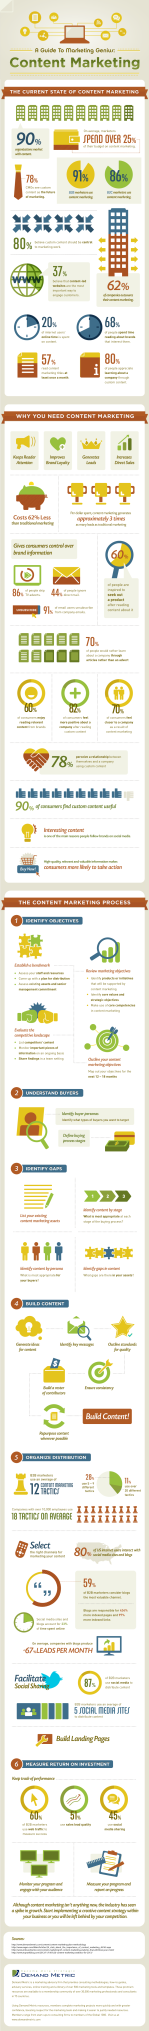 beginners-guide-to-content-marketing-infographic